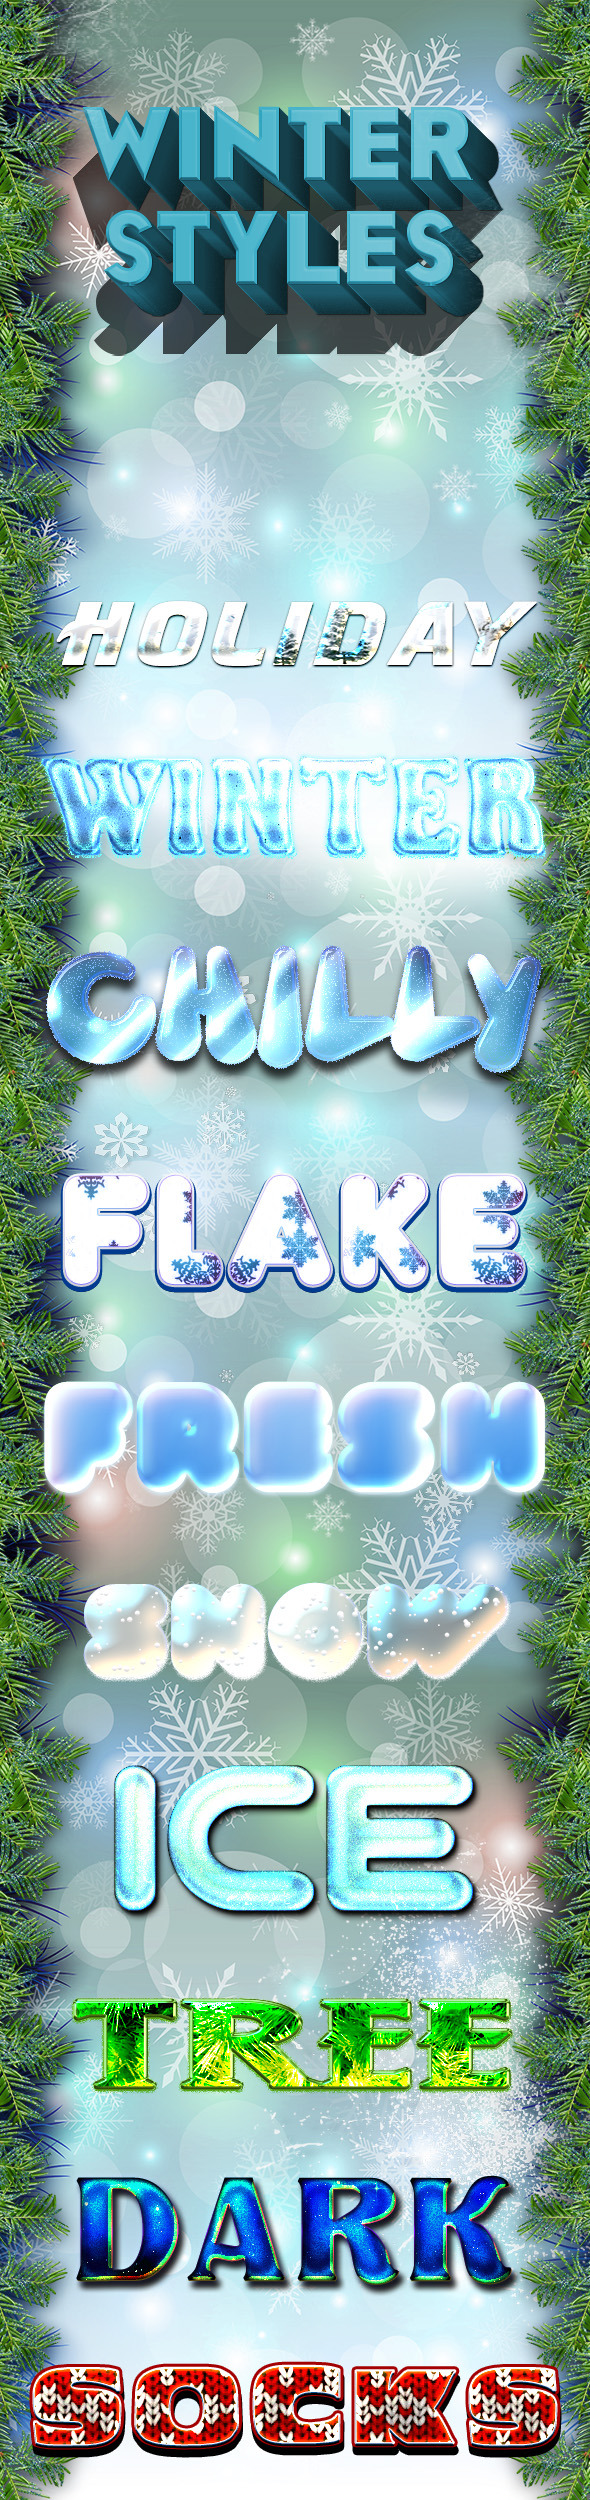 Winter Styles 2 - Text Effects Styles